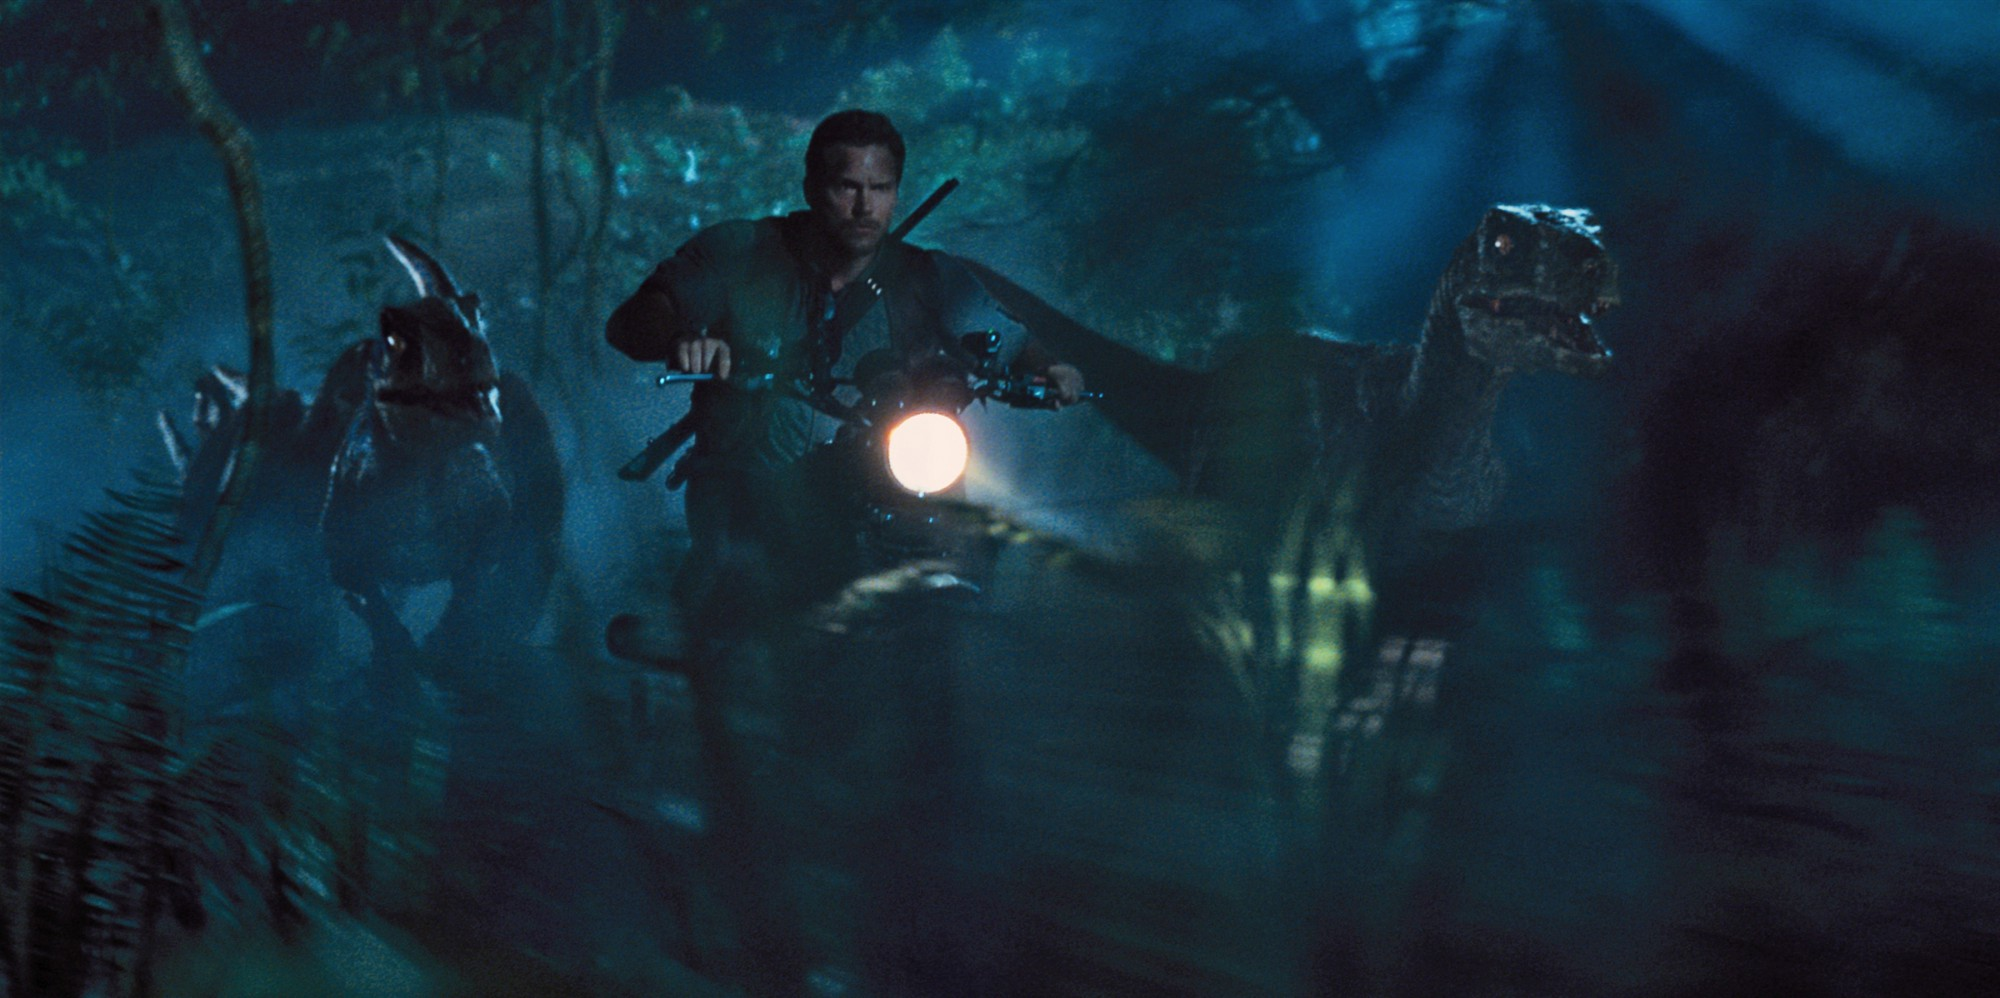 Raptors chasing Chris Pratt - Jurassic World